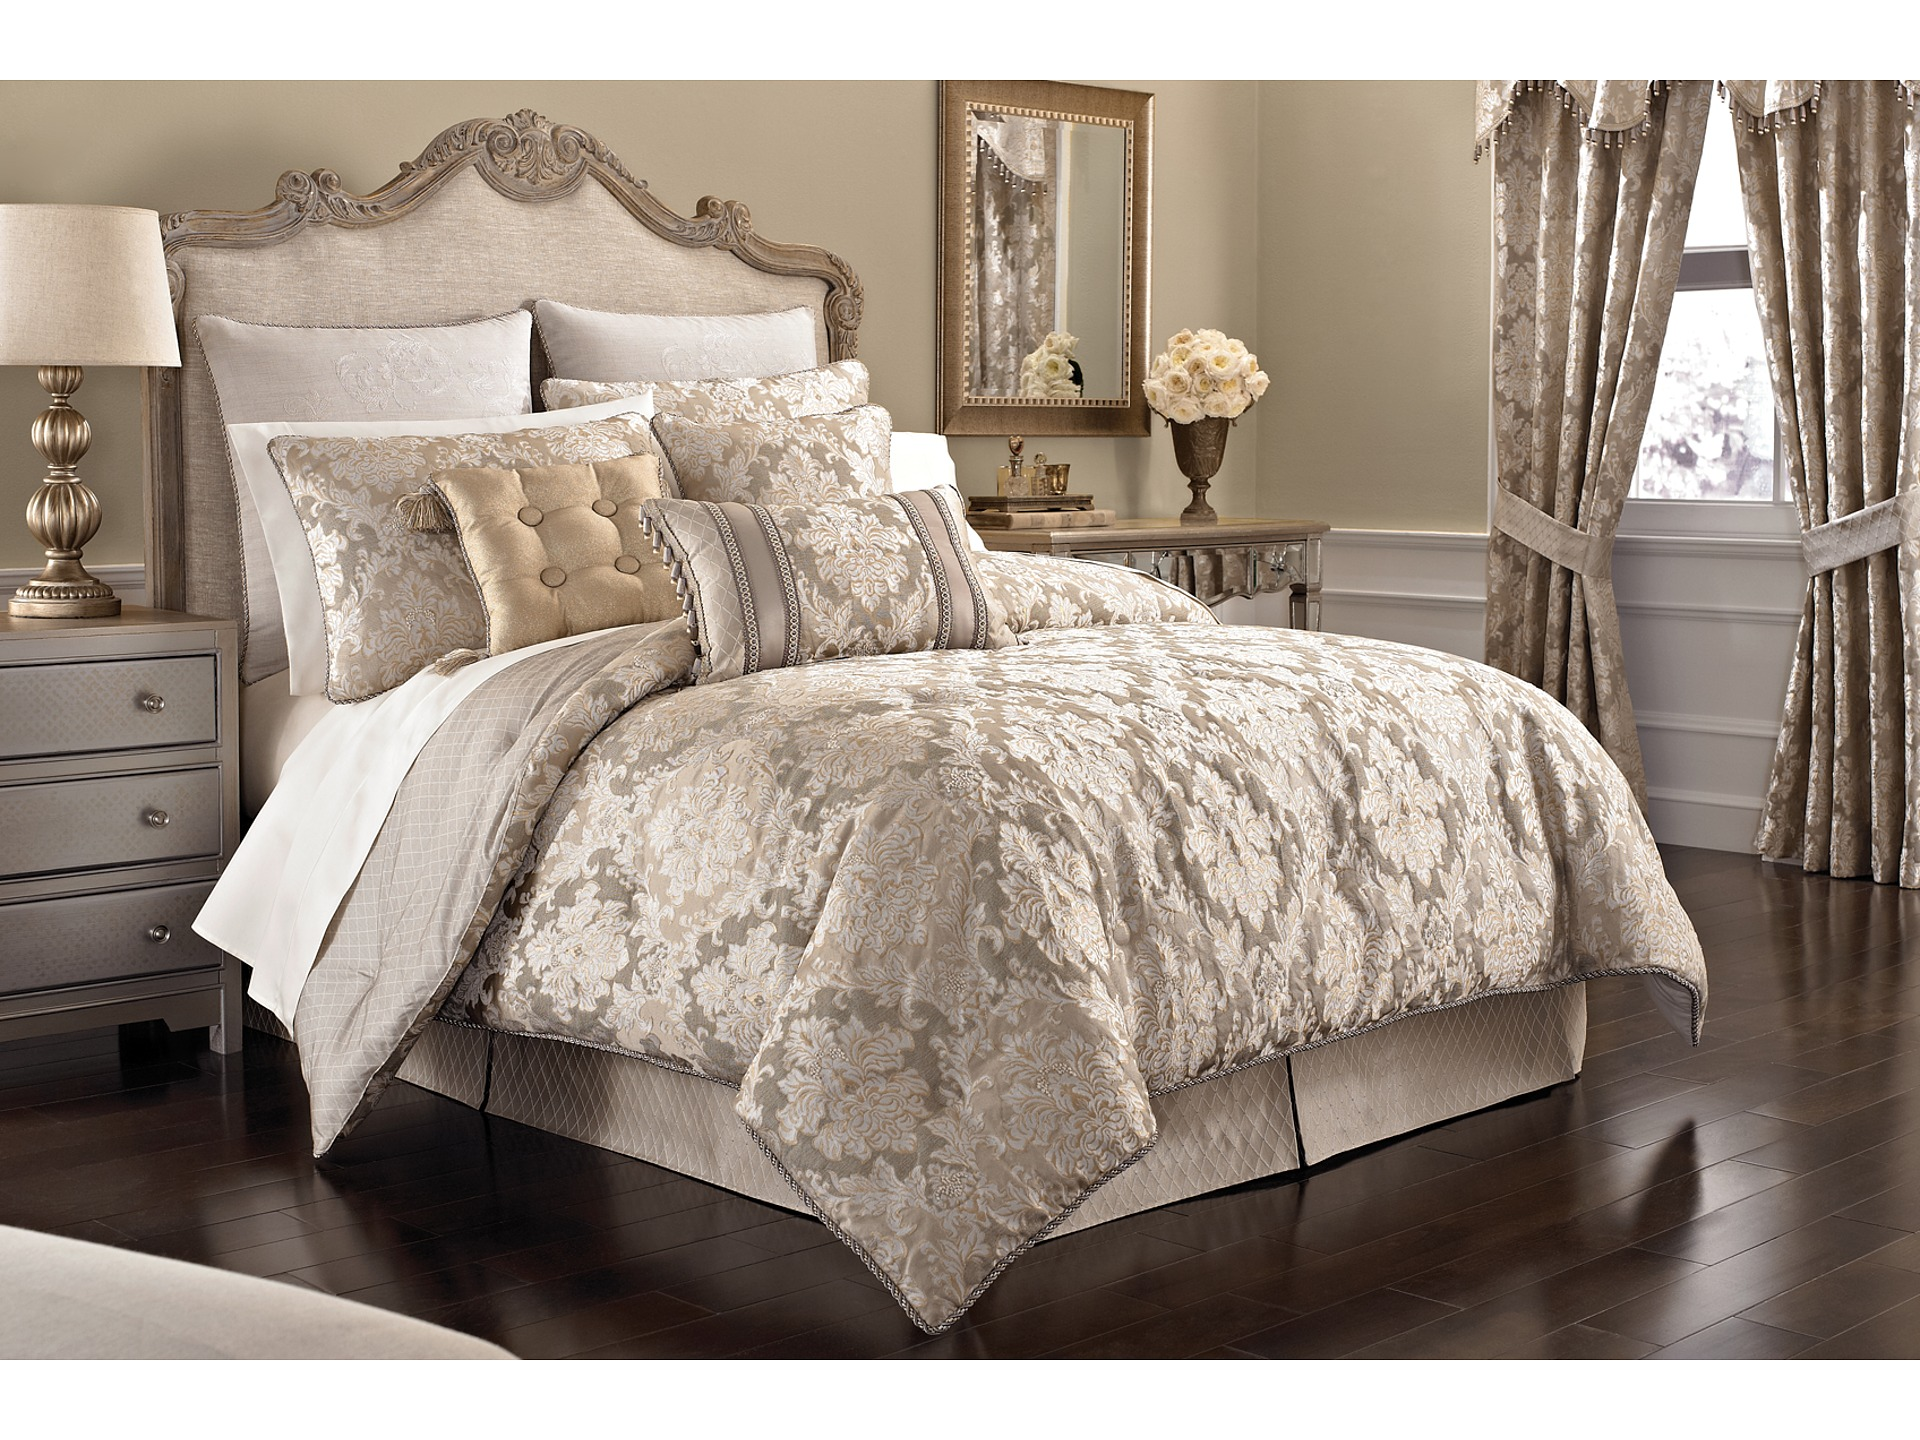 croscill ava king comforter set taupe shipped free at zappos. Black Bedroom Furniture Sets. Home Design Ideas